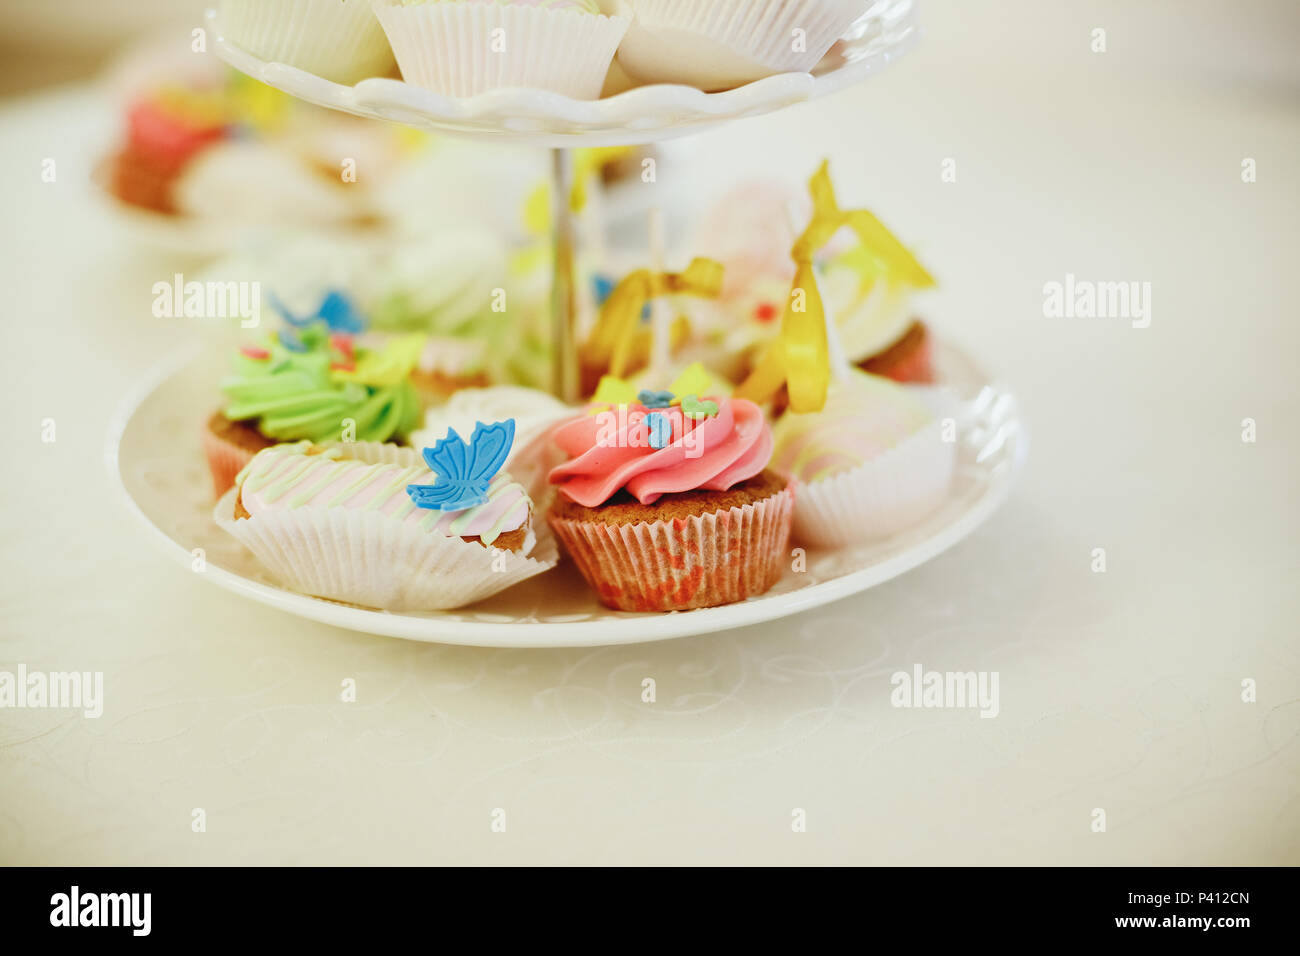 Gourmet cupcakes with colorful buttercream frosting on white table.holiday picture, festive bakery. Toned image. Fresh baked homemade cupcakes.Decorative birthday cupcaces on cake stand.Copy space - Stock Image